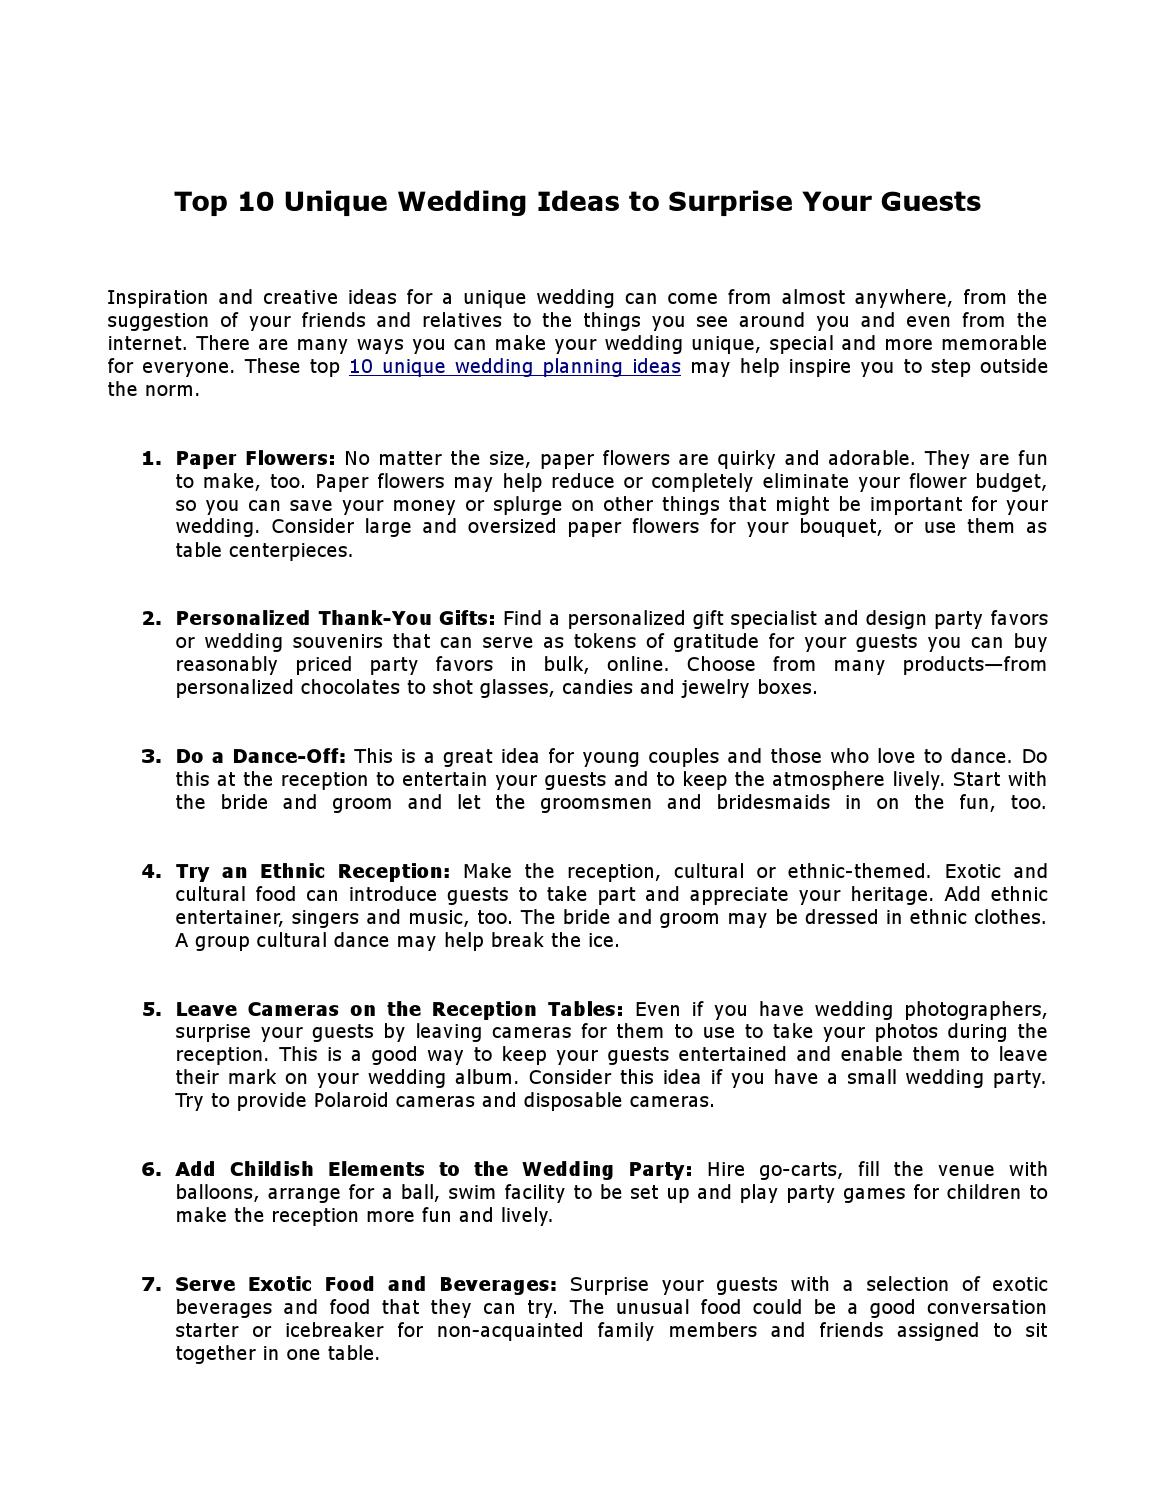 Top 10 Unique Wedding Ideas To Surprise Your Guests By Iwedplanner